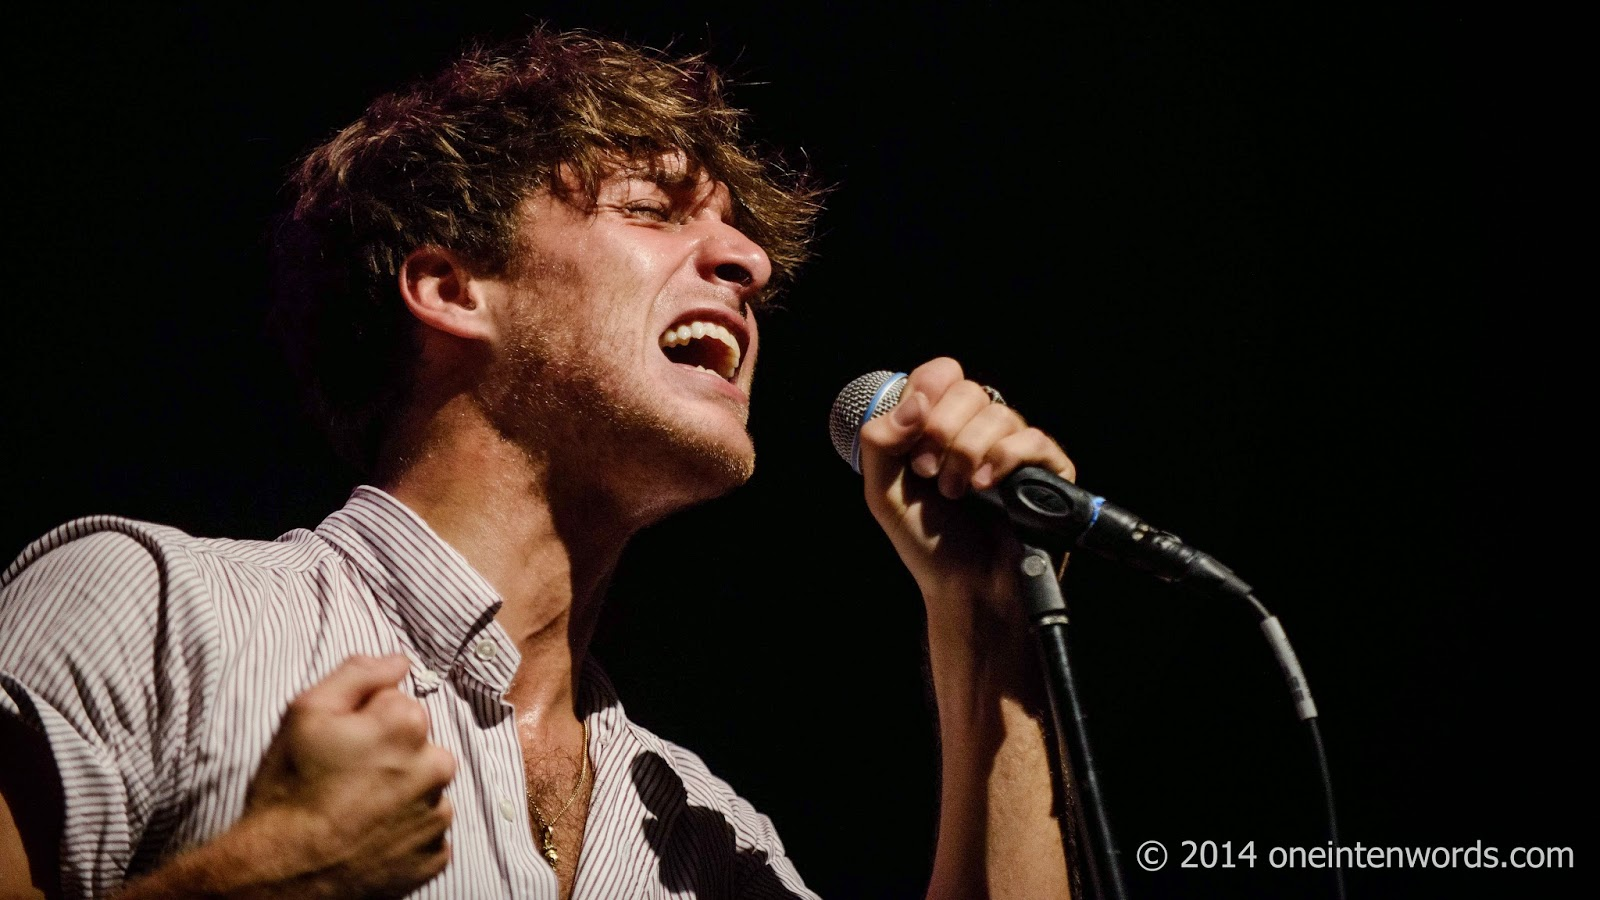 Paolo Nutini at Sound Academy September 15, 2014 Photo by John at One In Ten Words oneintenwords.com toronto indie alternative music blog concert photography pictures